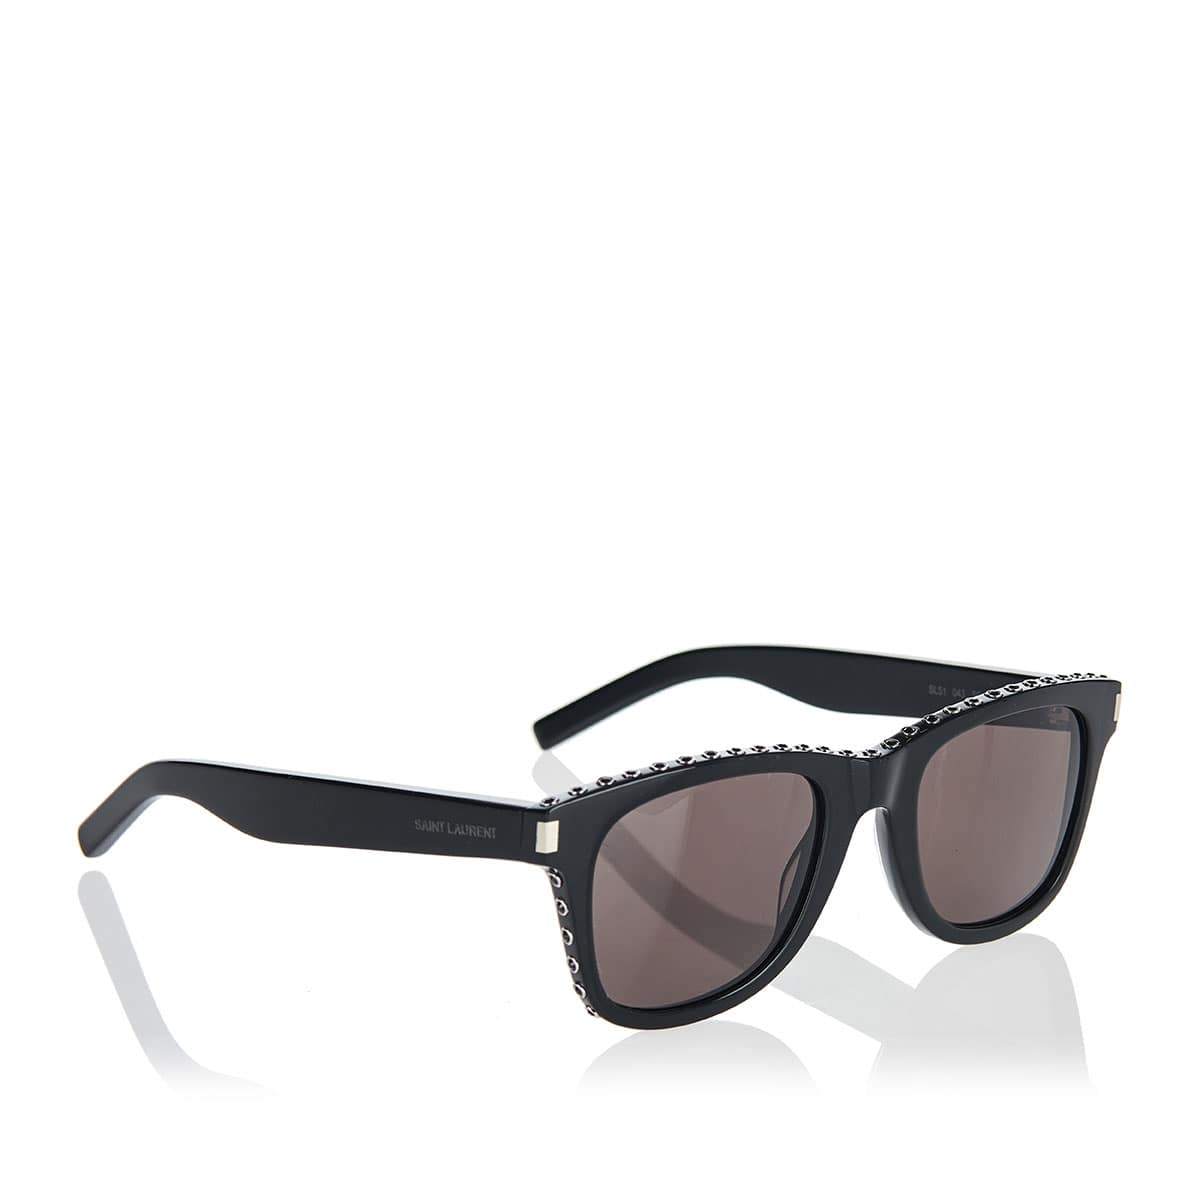 Studded square sunglasses